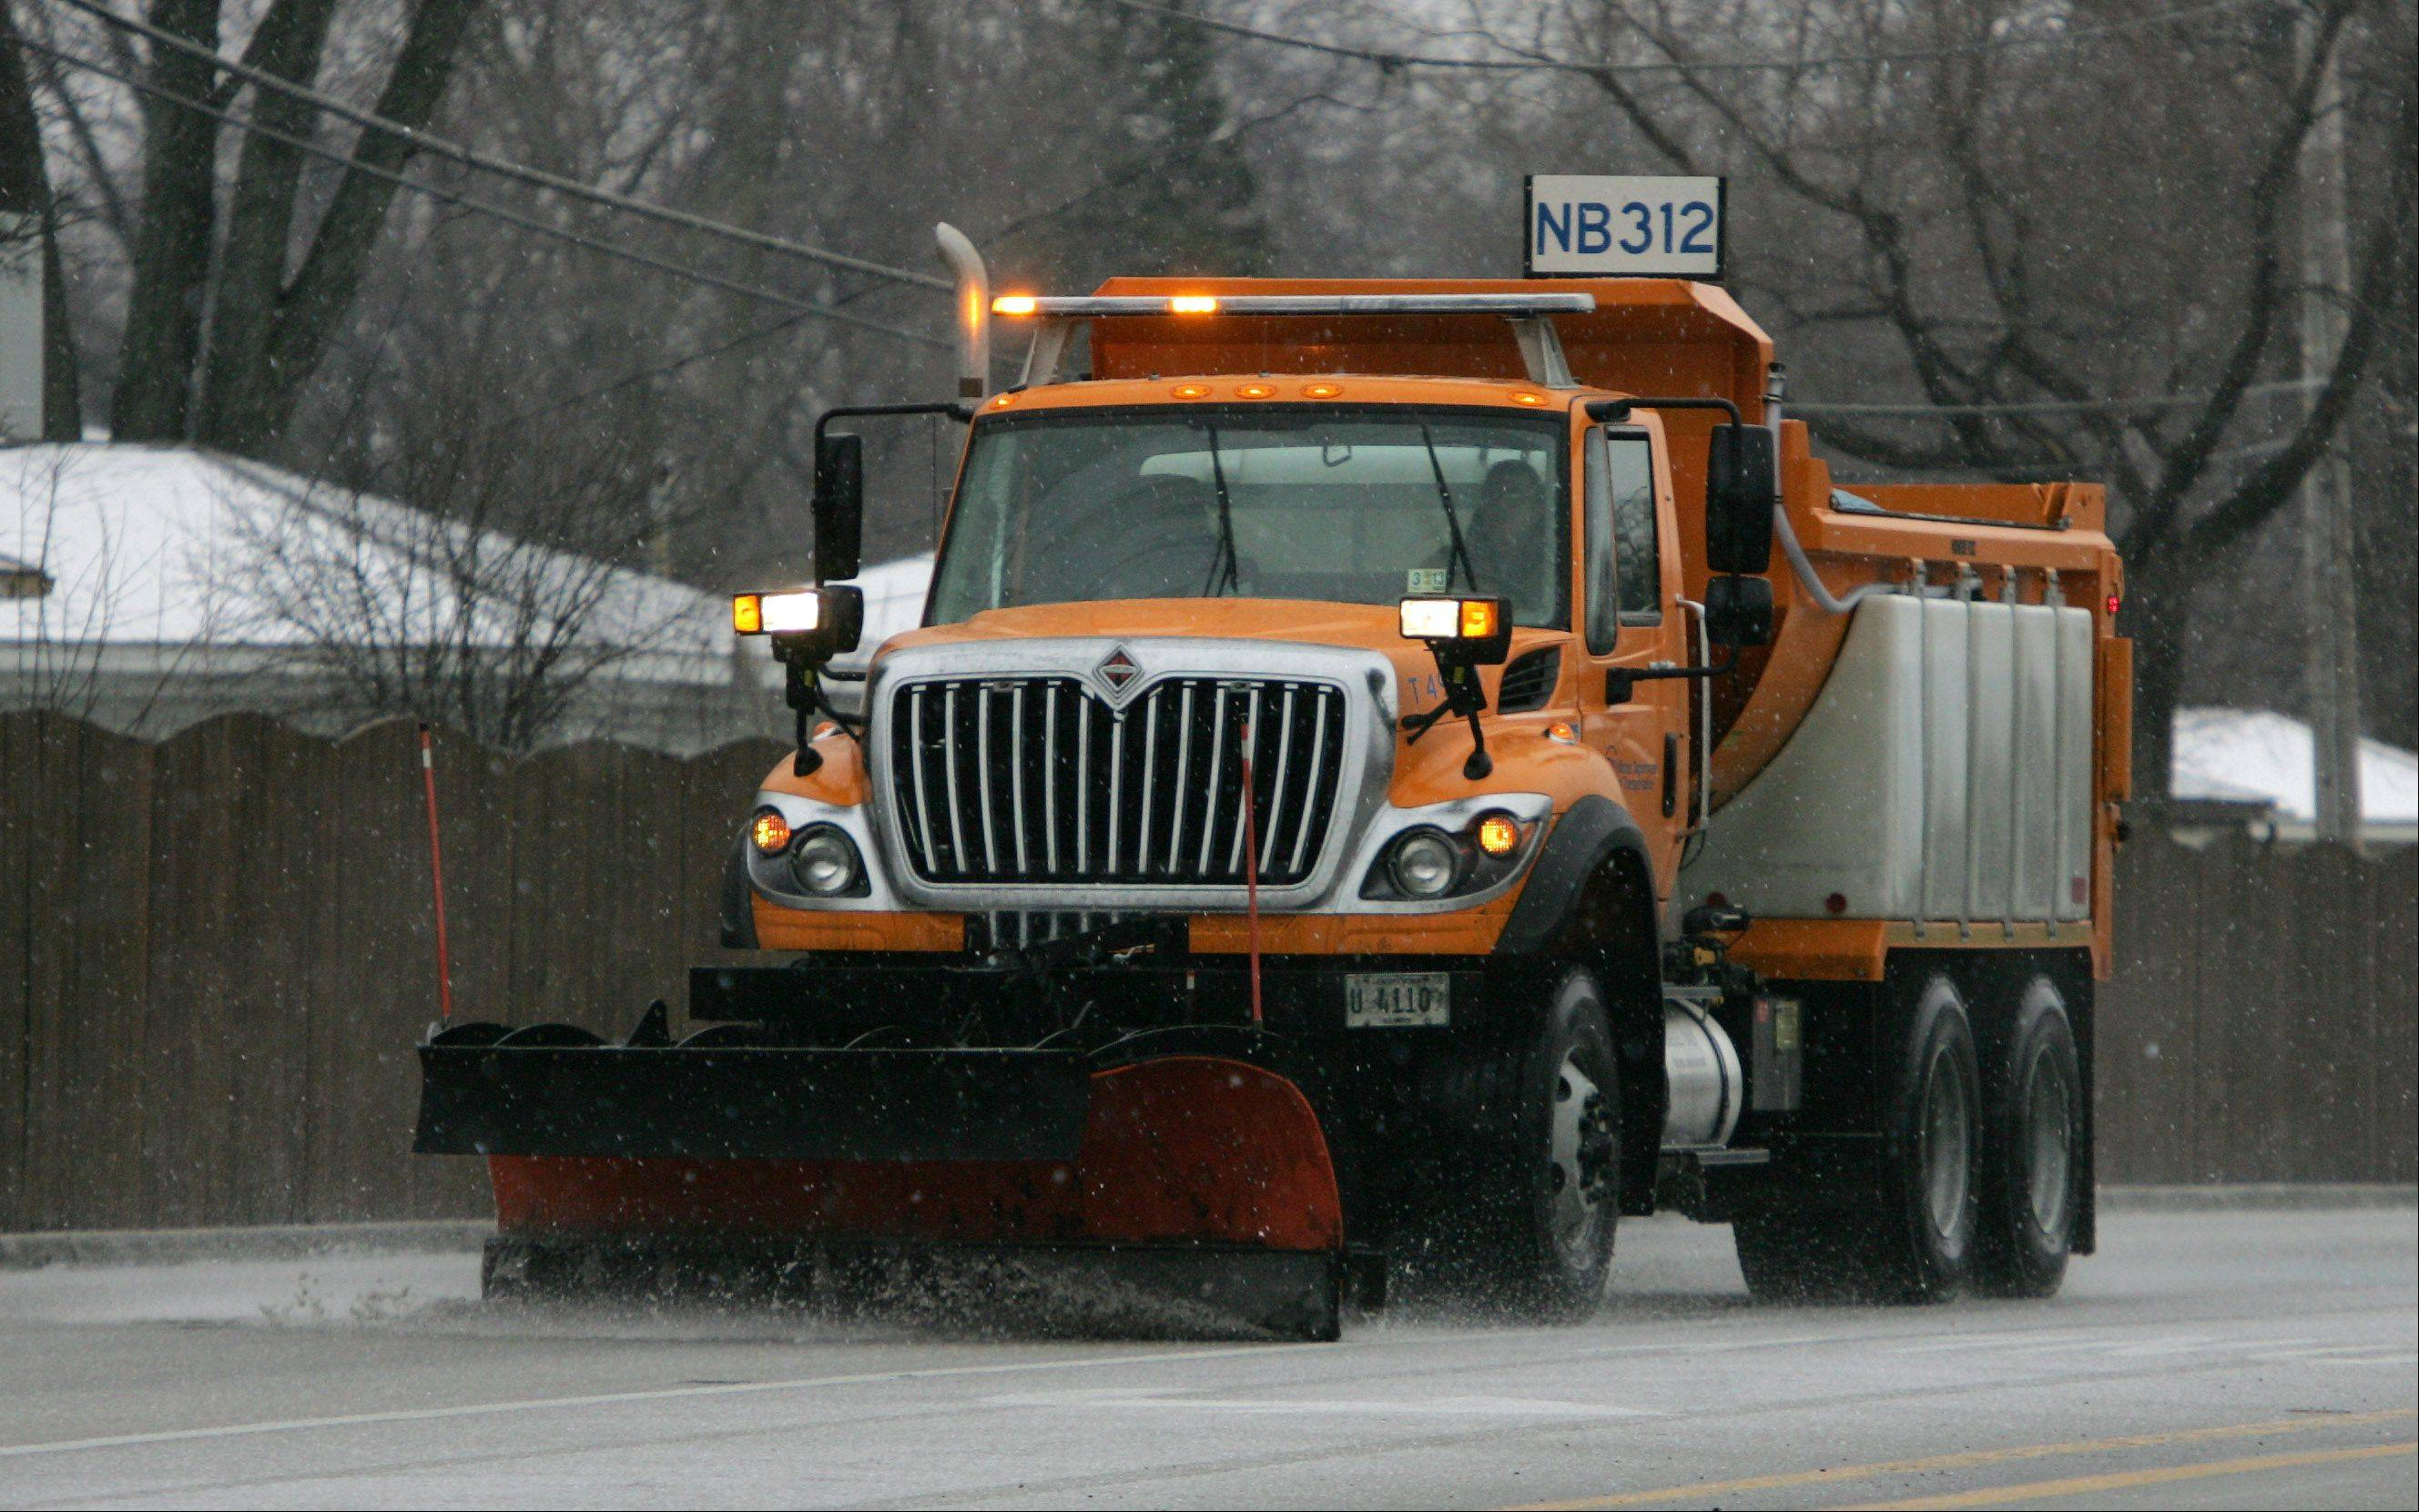 An Illinois Department of Transportation truck dumps salt along Elmhurst Road in Wheeling Sunday as an ice storm hit the area causing difficult driving conditions. Several flight delays were reported at O'Hare International Airport because of the weather.